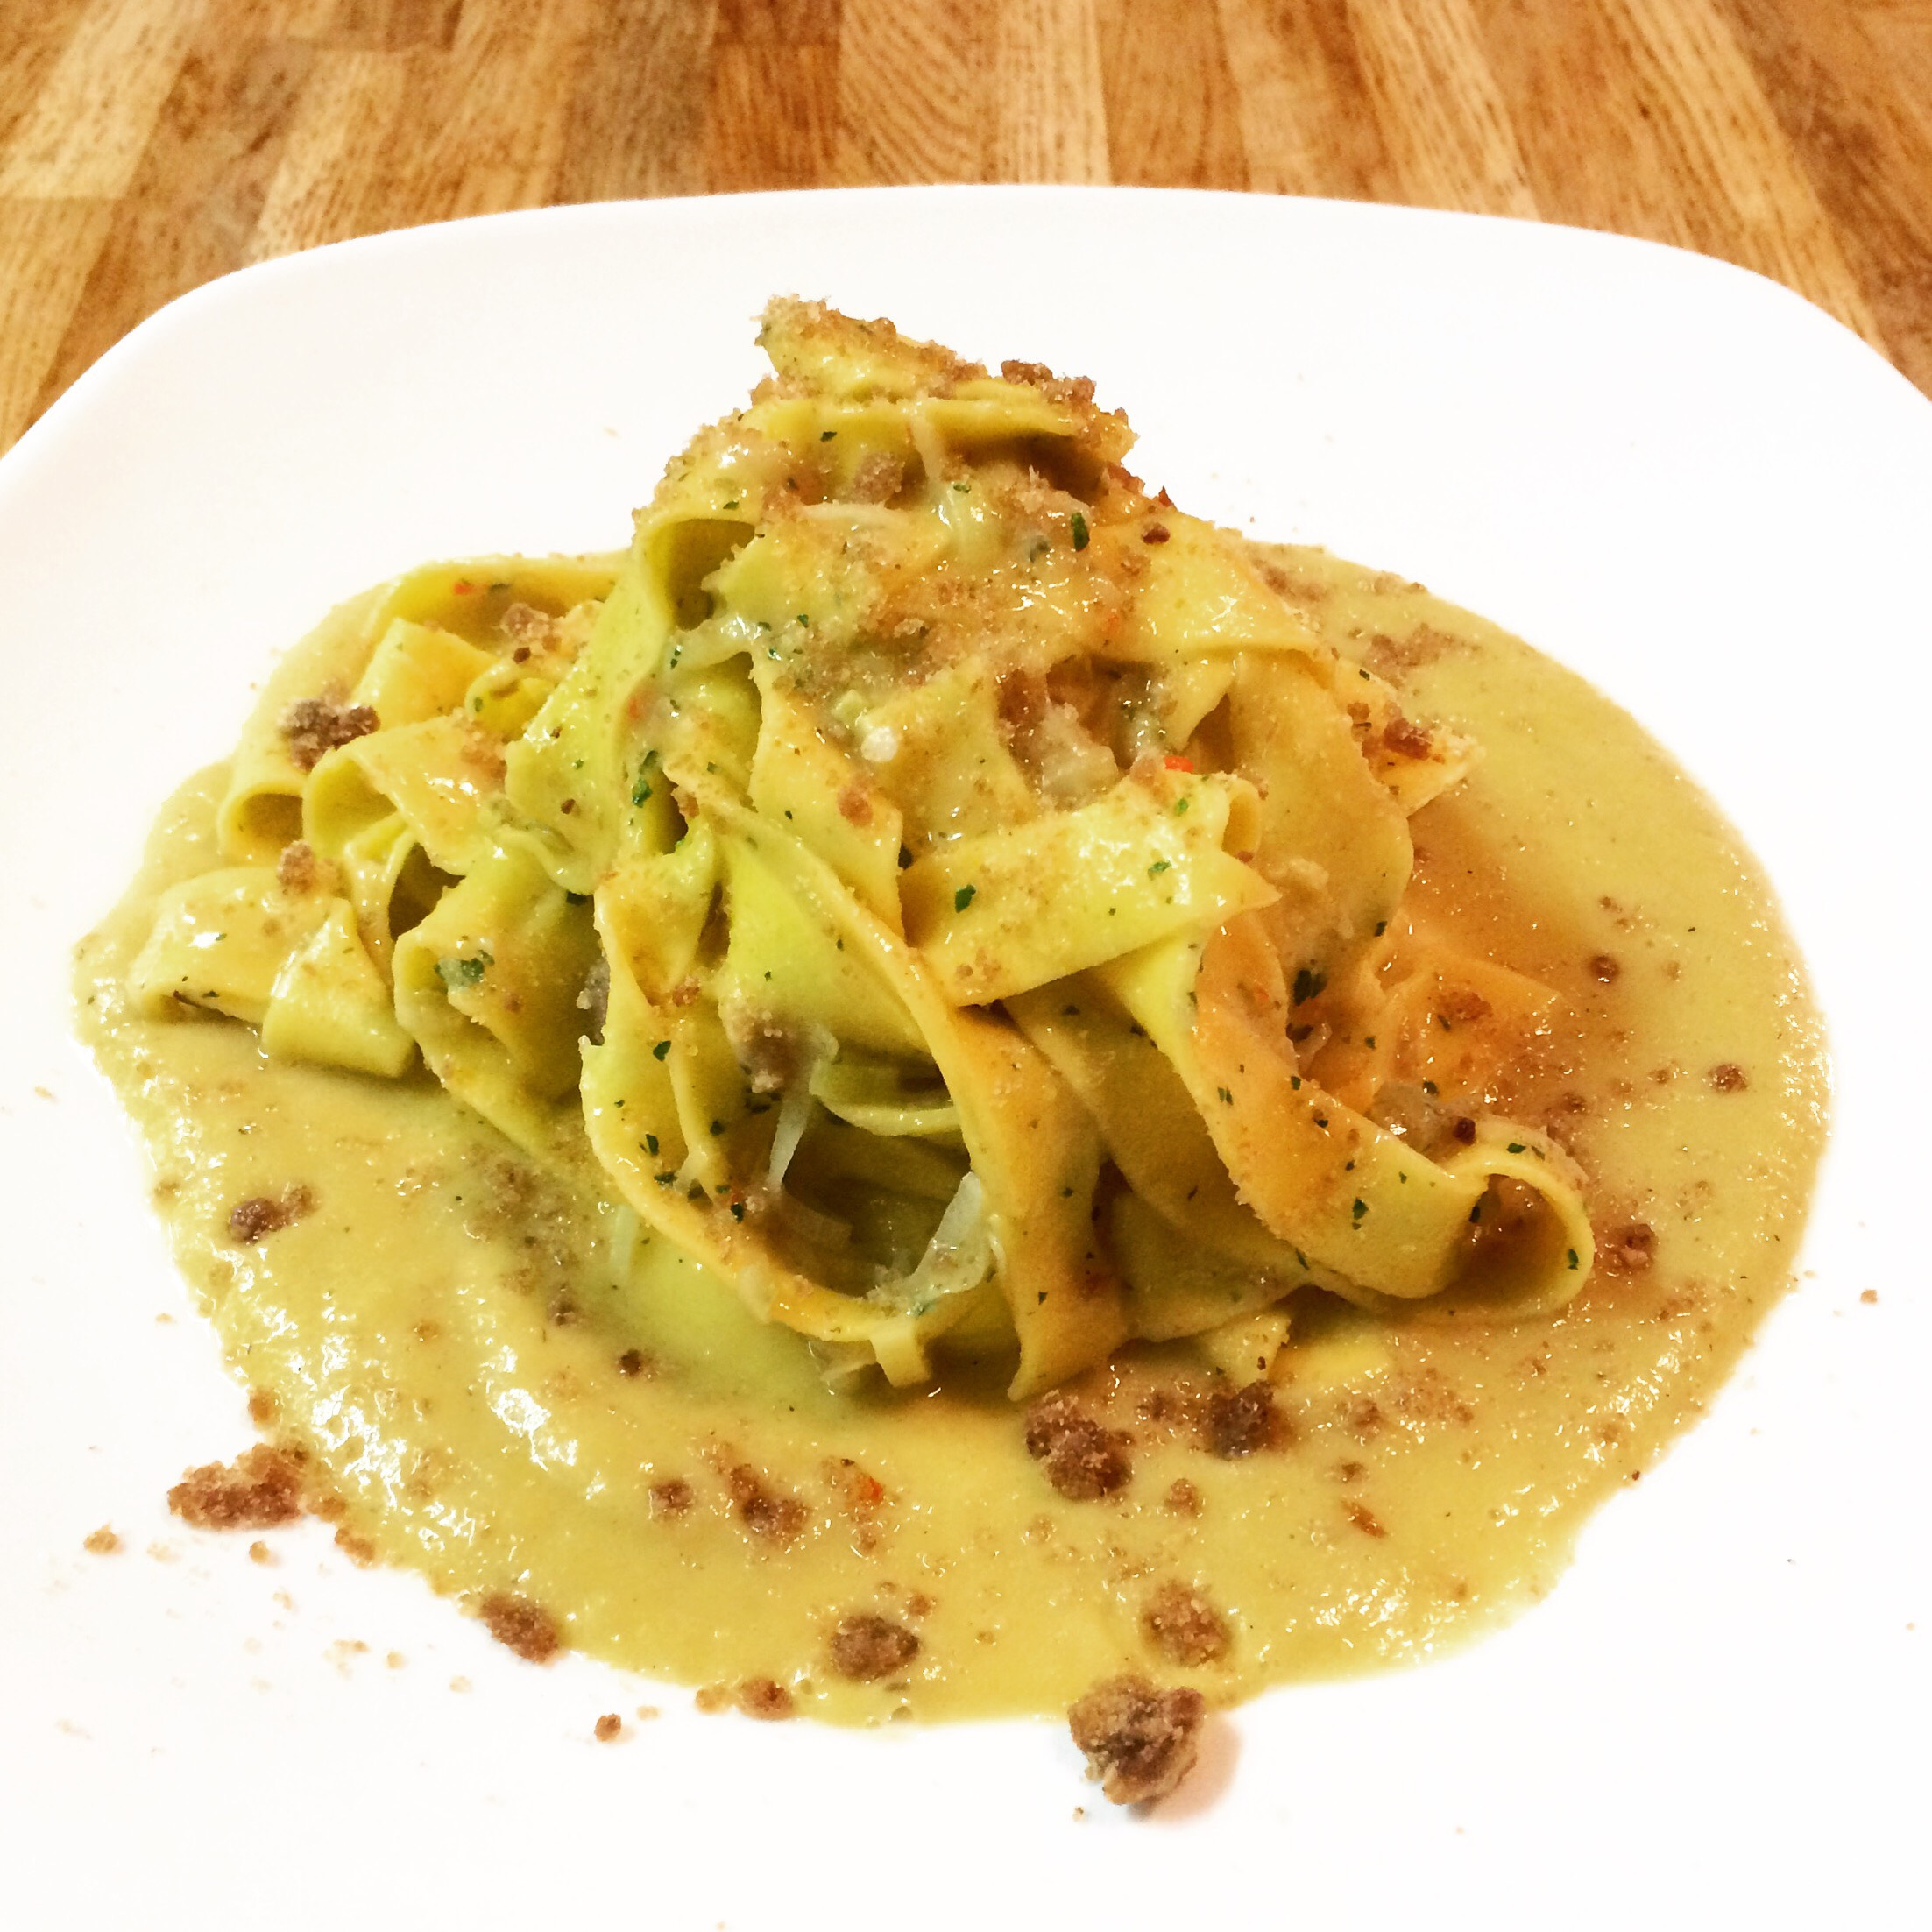 Homemade tagliatelle with leeks sauce, breadcrumbs and anchovies